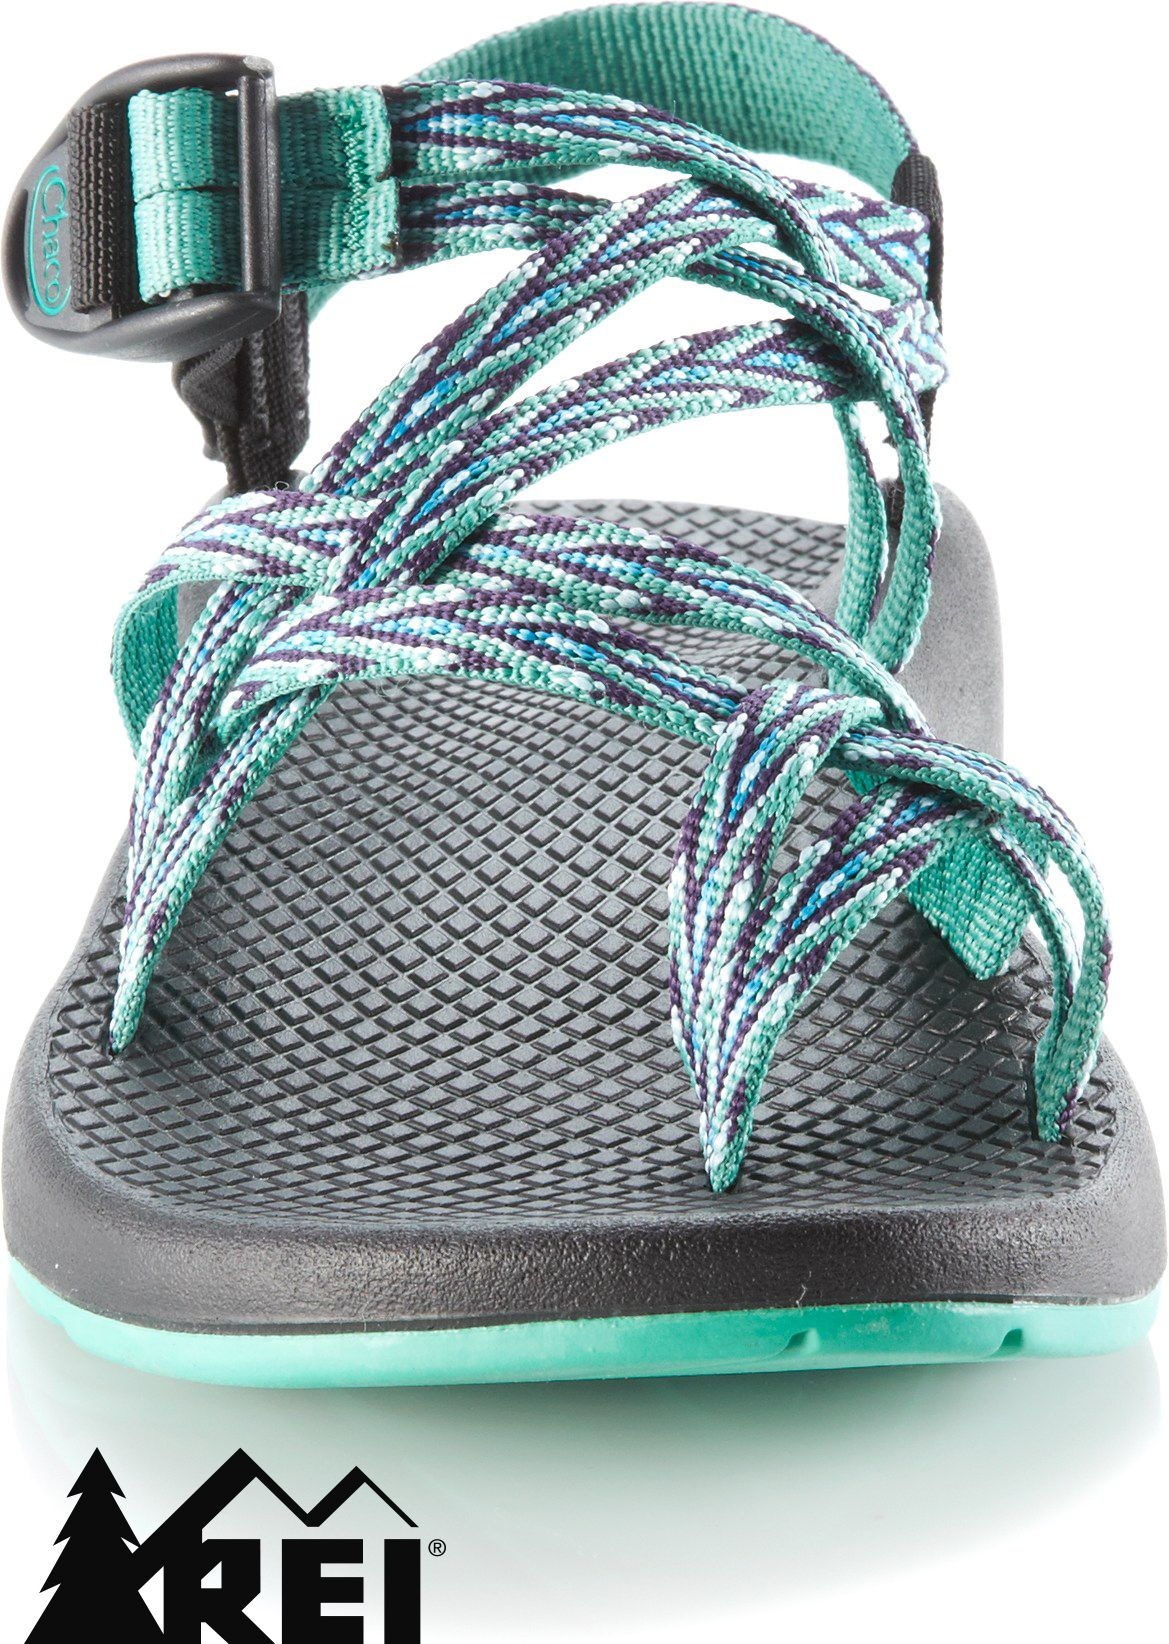 841672ae87b5 With a double-strap design and loops that wrap around your big toes